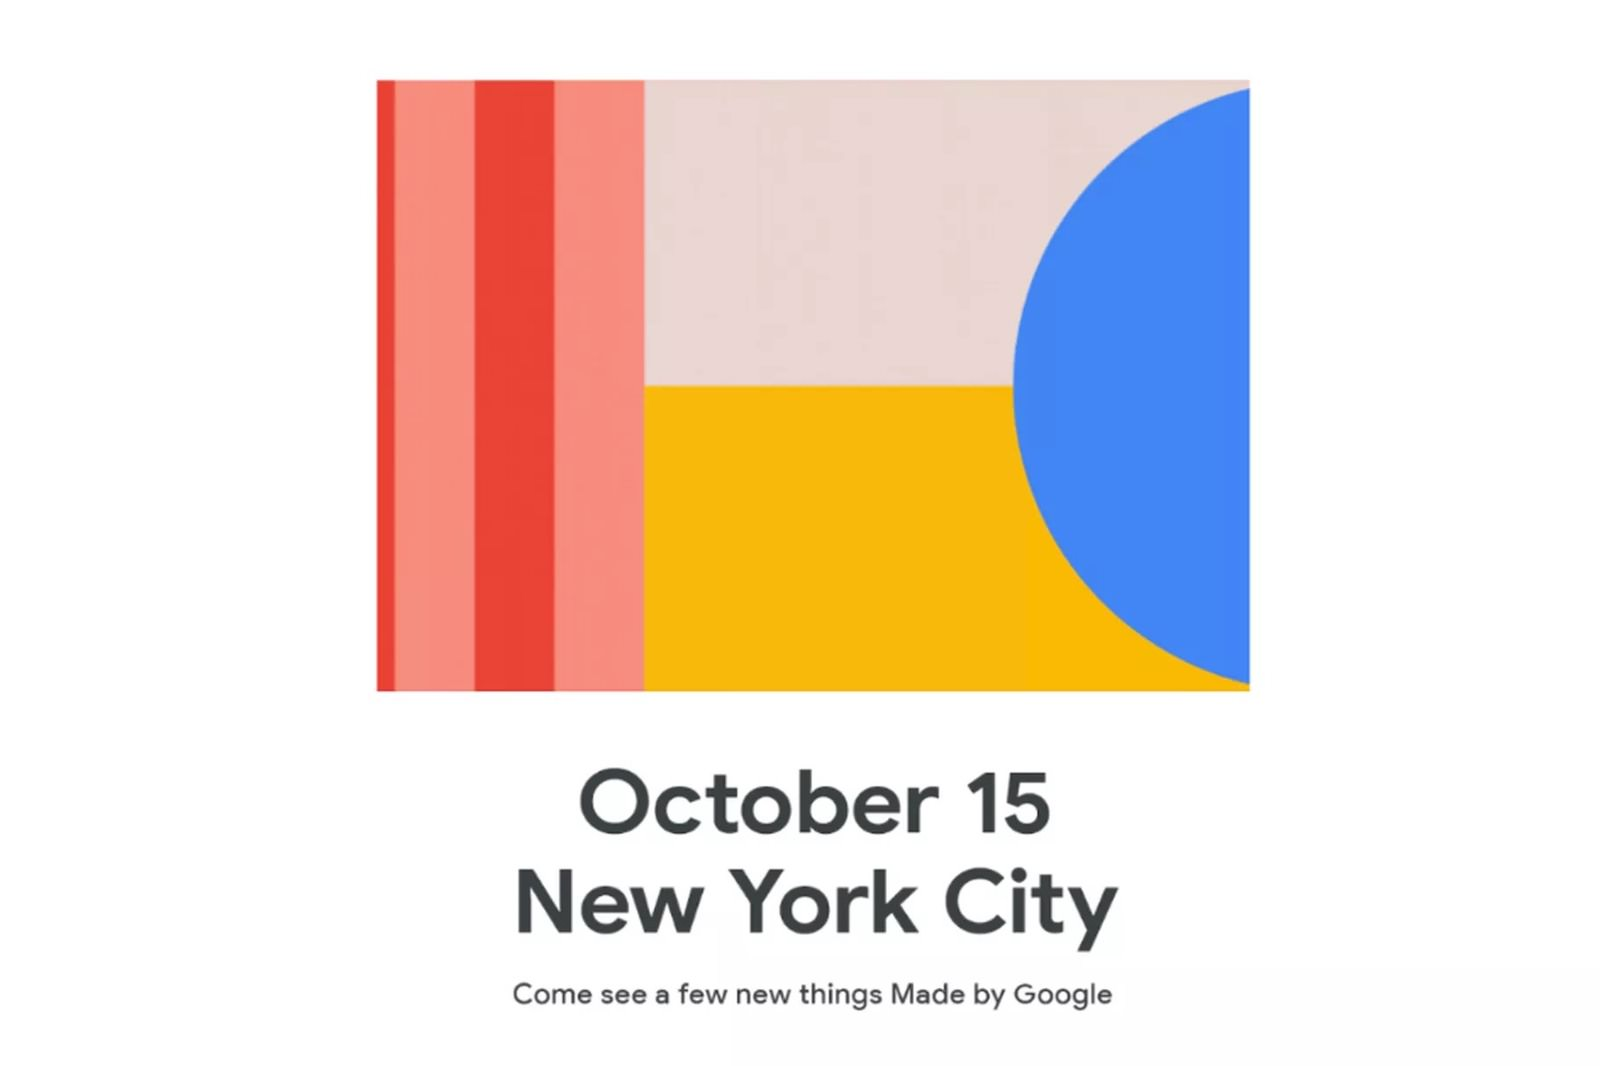 Google Special Event Goes live on oct 15